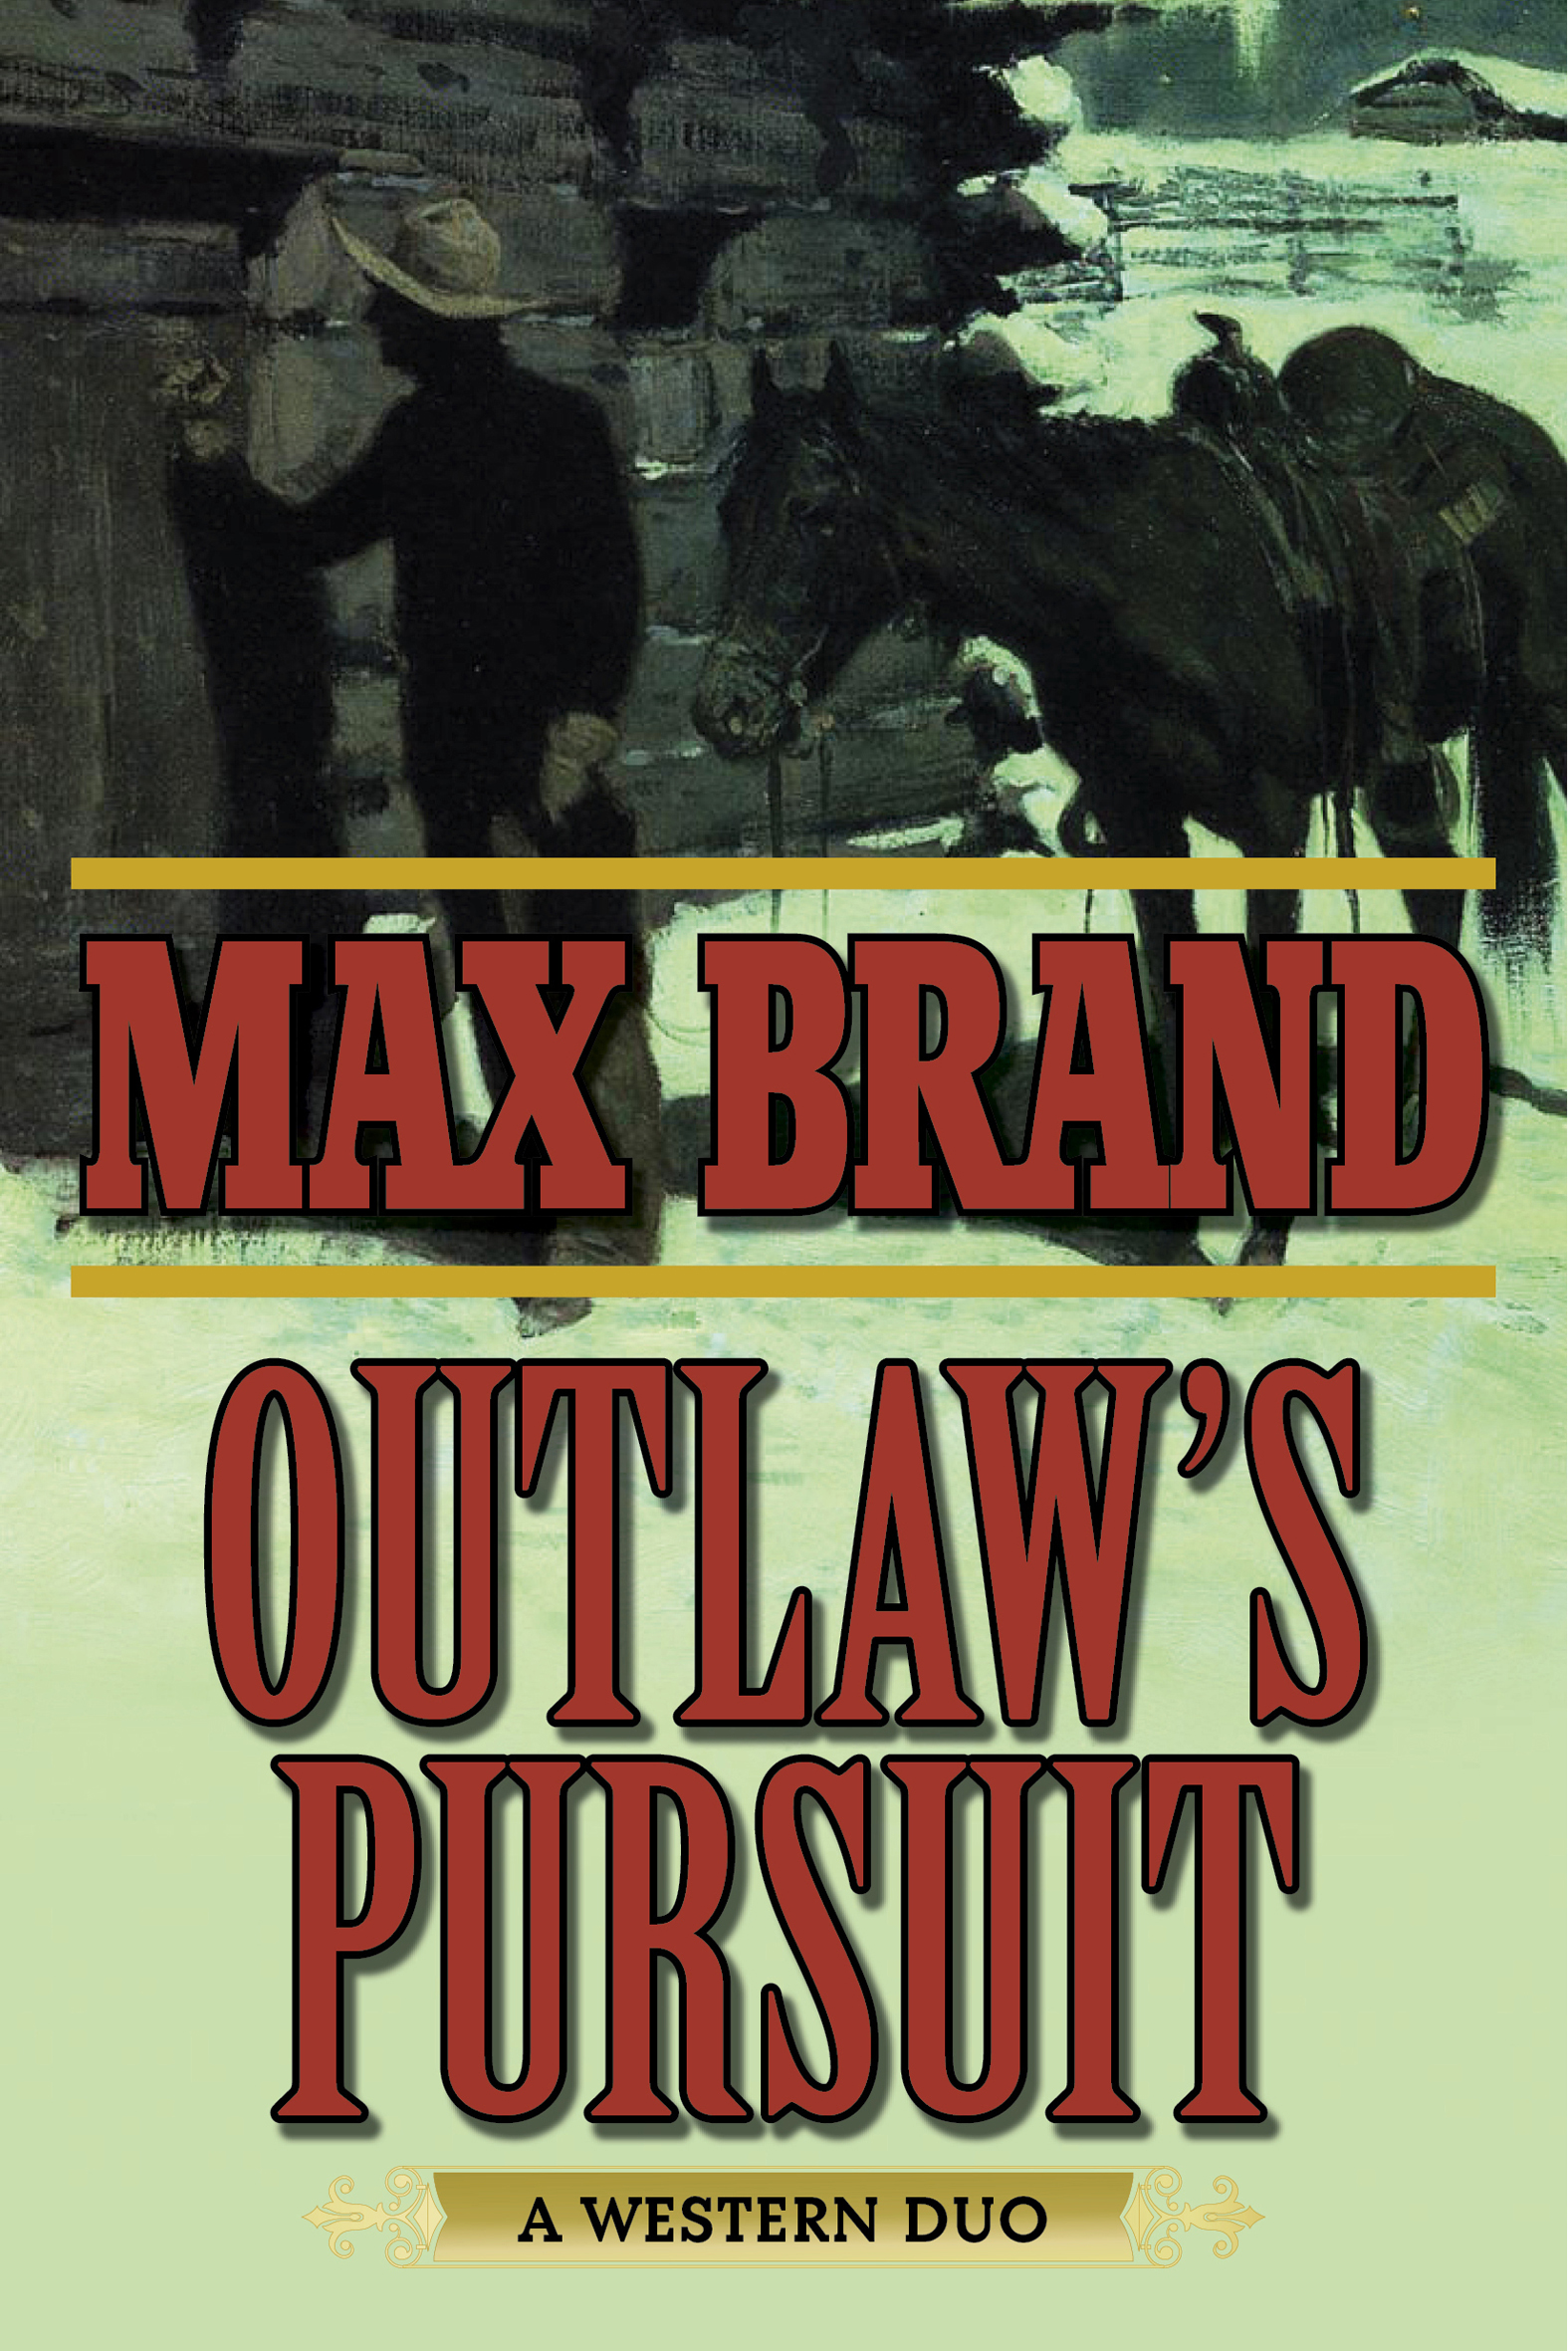 Outlaw's Pursuit A Western Duo